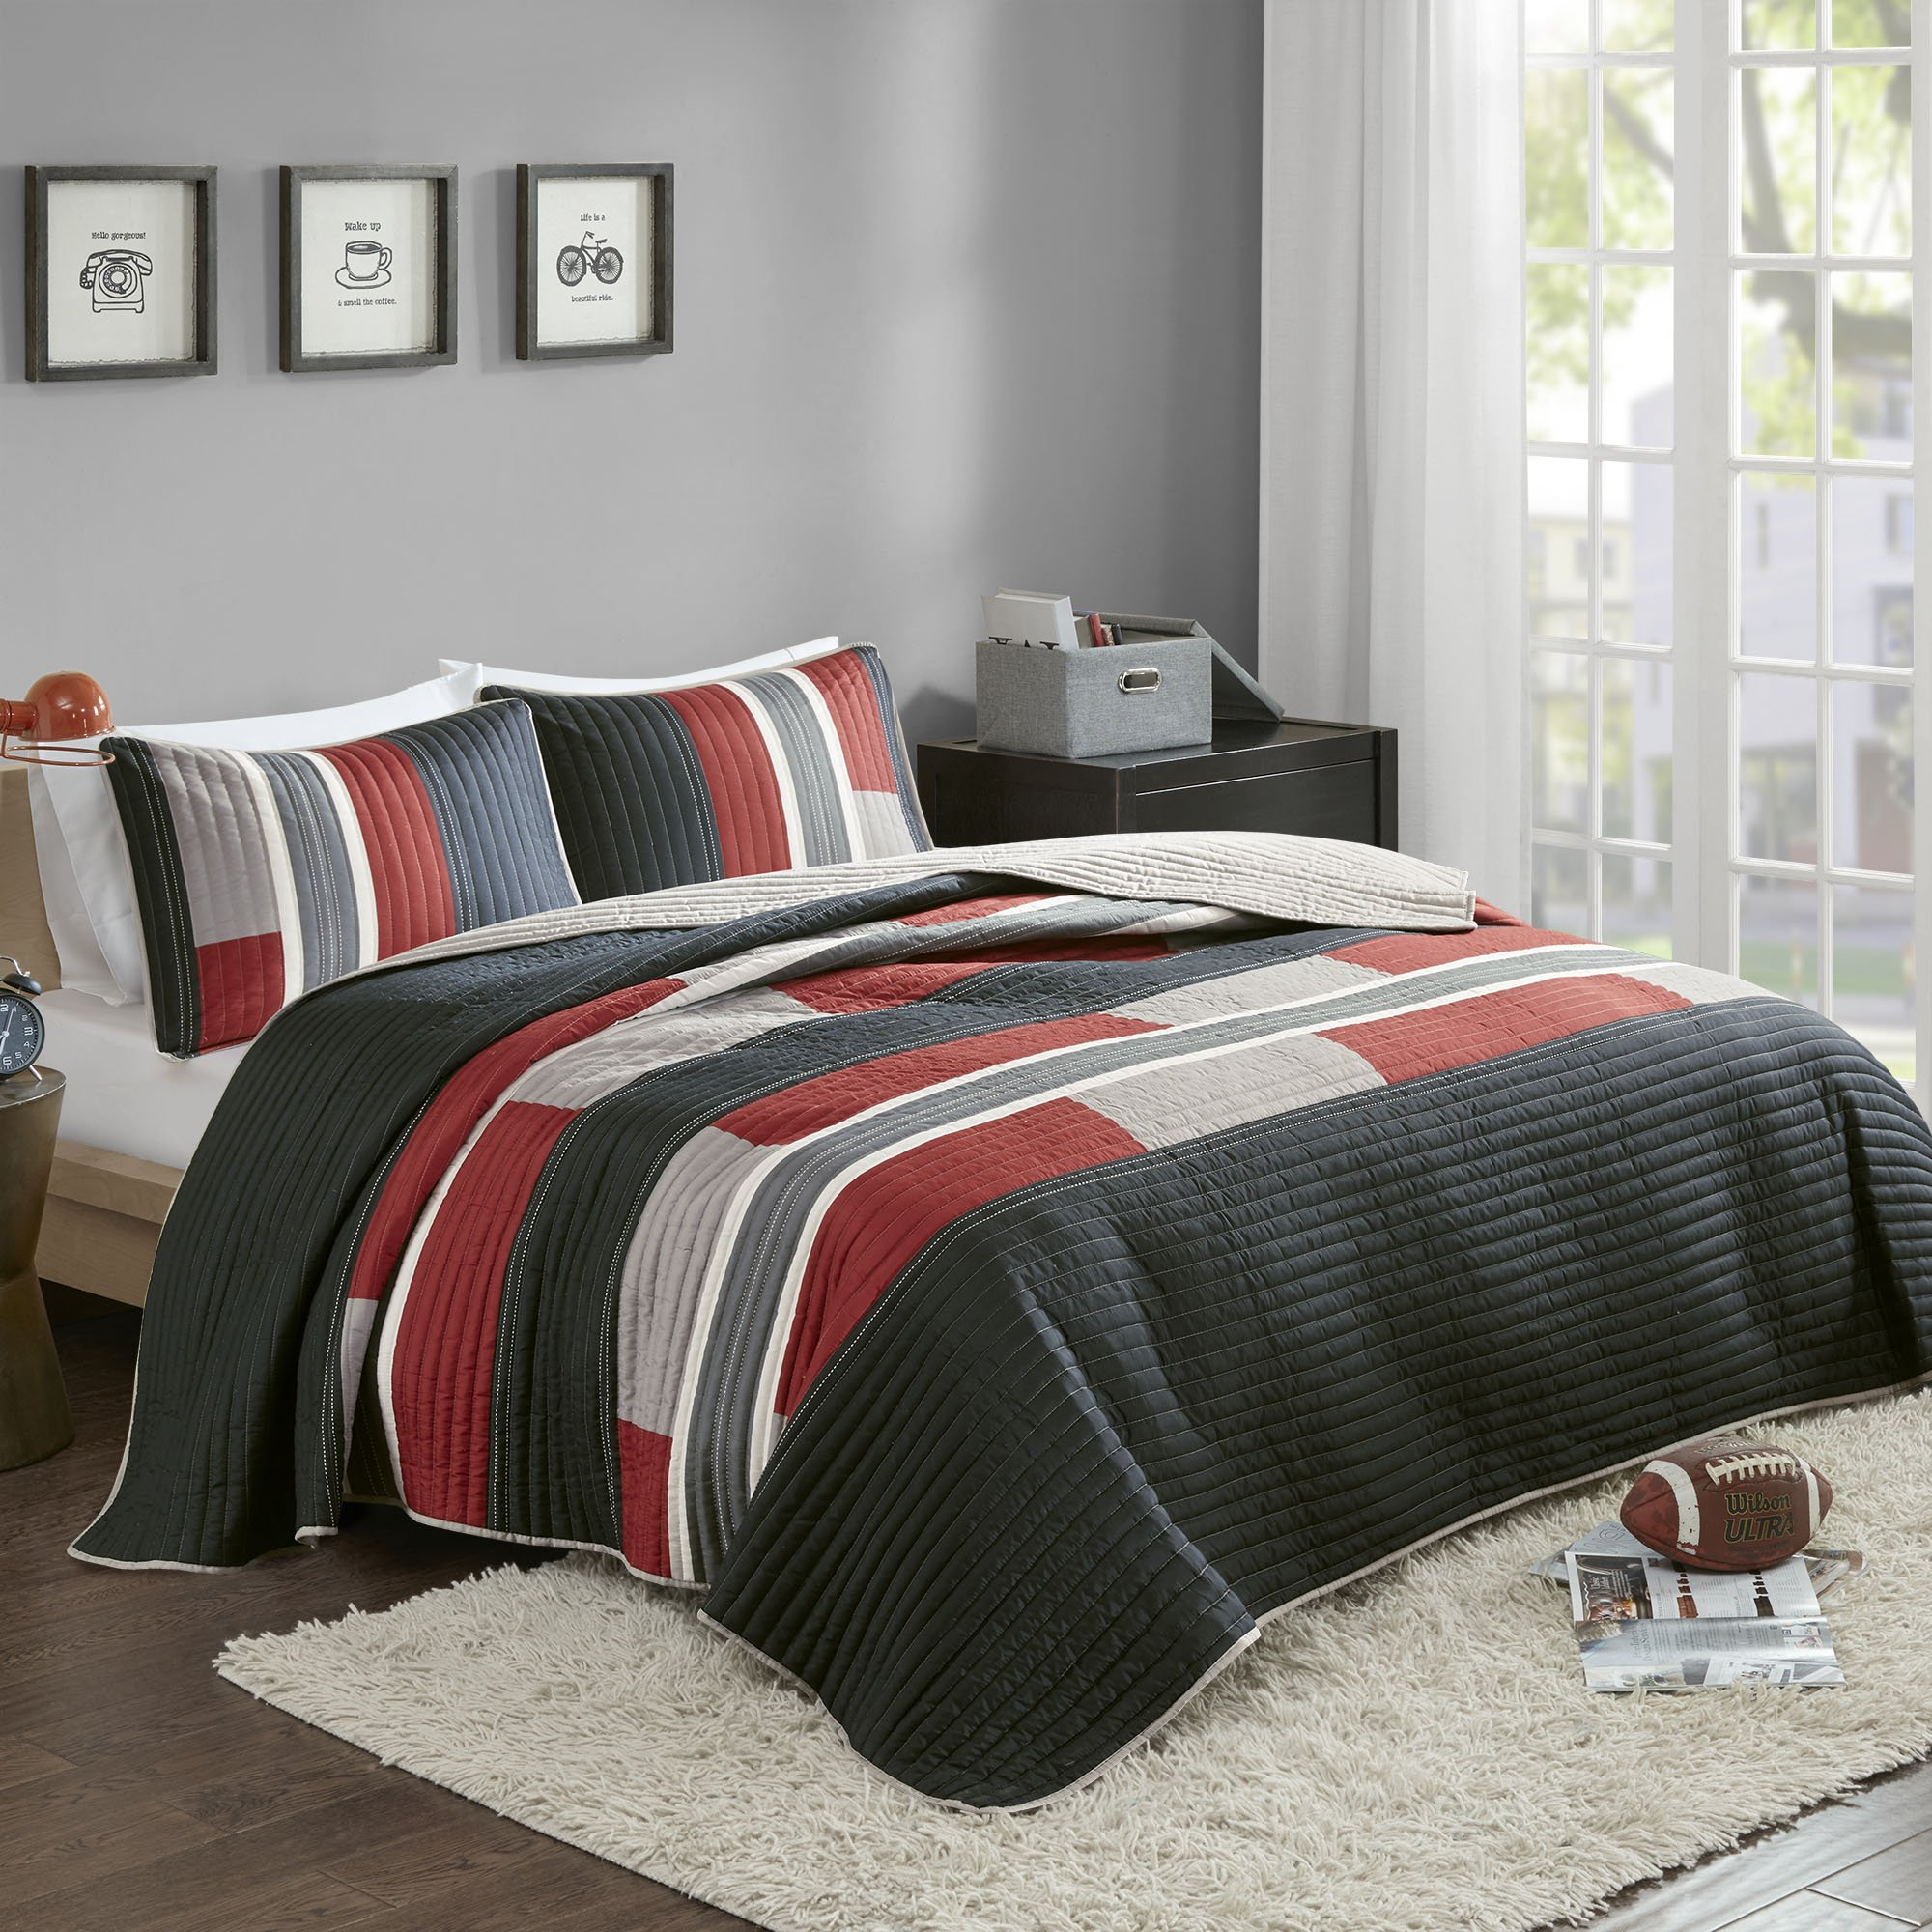 Comfort Spaces Bedspreads Queen Size Mini Quilt Set - Casual Pierre 3 Piece Kids Lightweight Filling Bedding Cover - Black/Red Patchwork Print - All Season Hypoallergenic - Fits Full/Queen